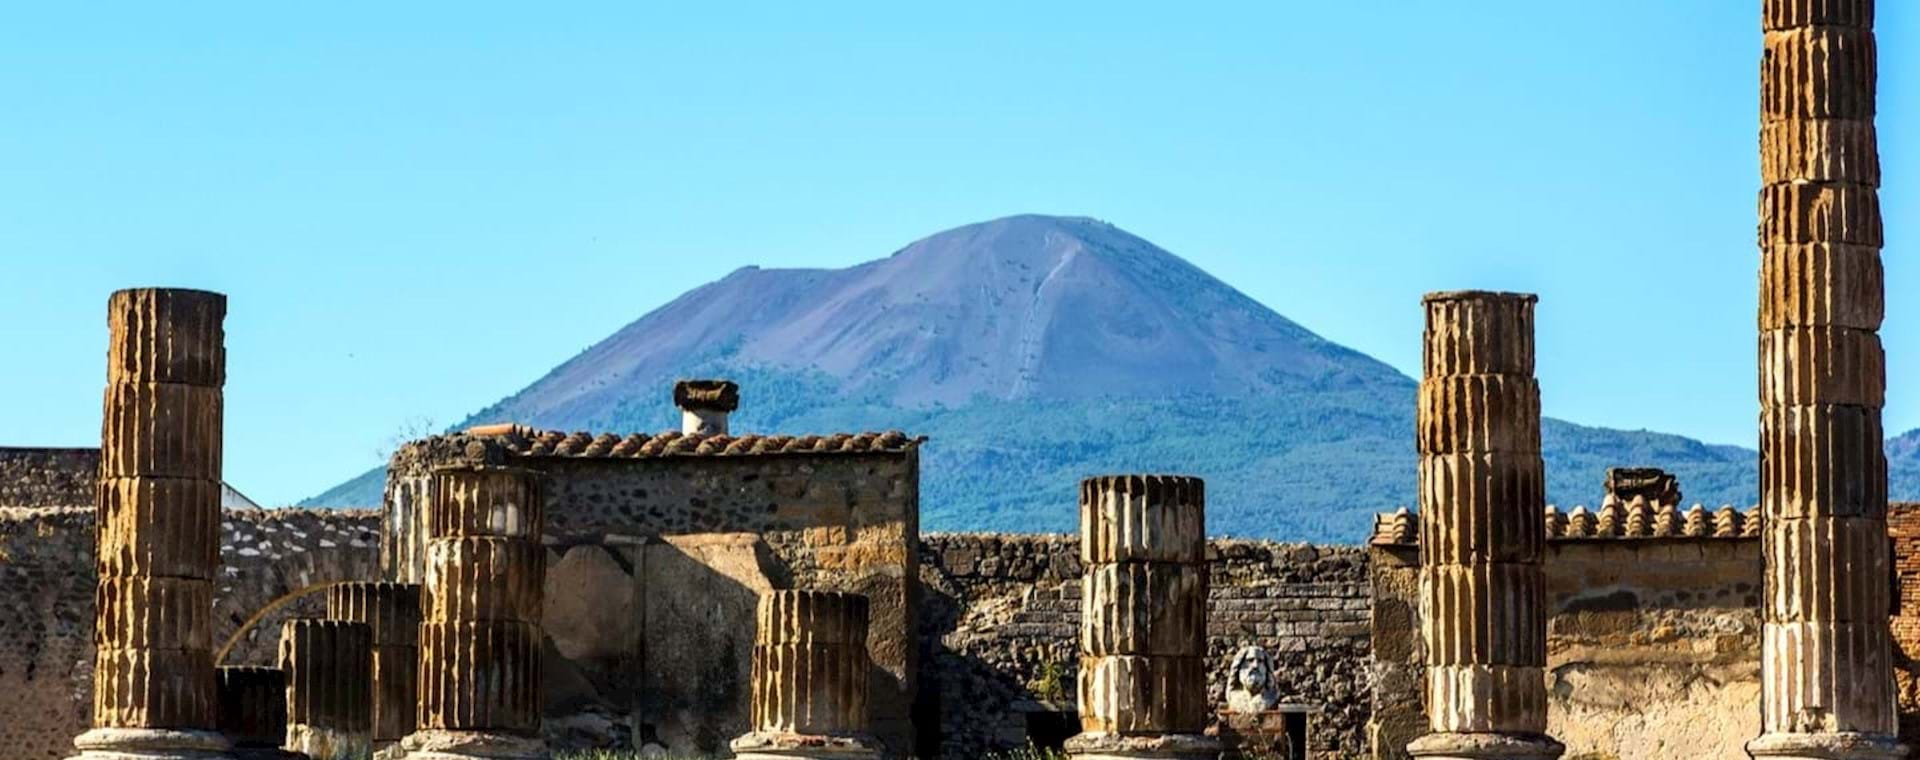 Pompeii and Vesuvius Tour from Naples with Lunch and Wine Tasting